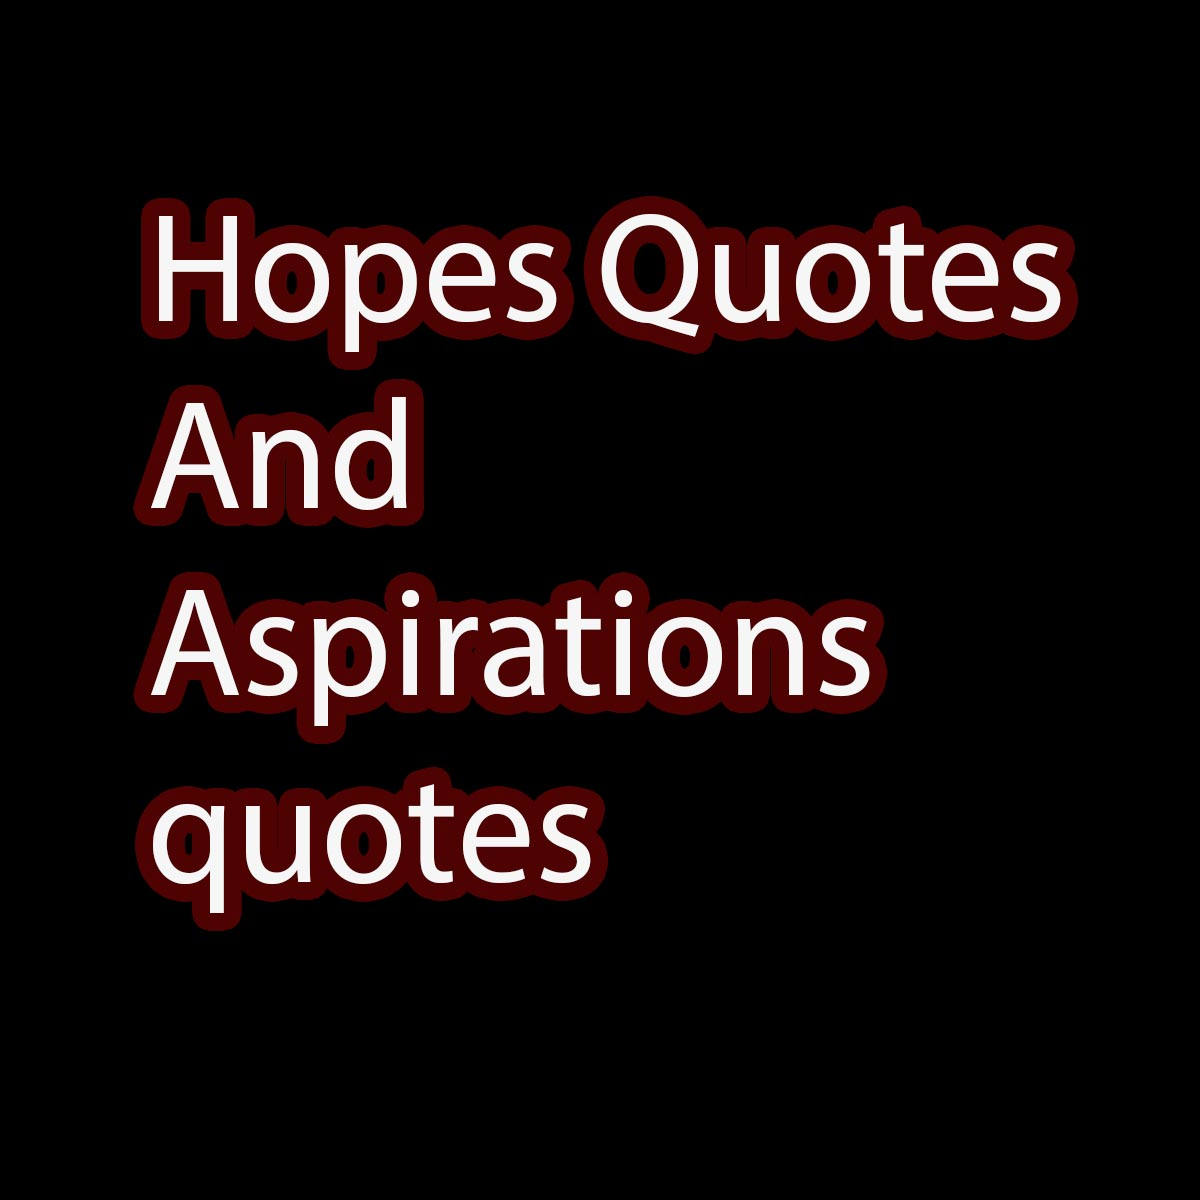 Hopes Quotes And Aspirations quotes sayings